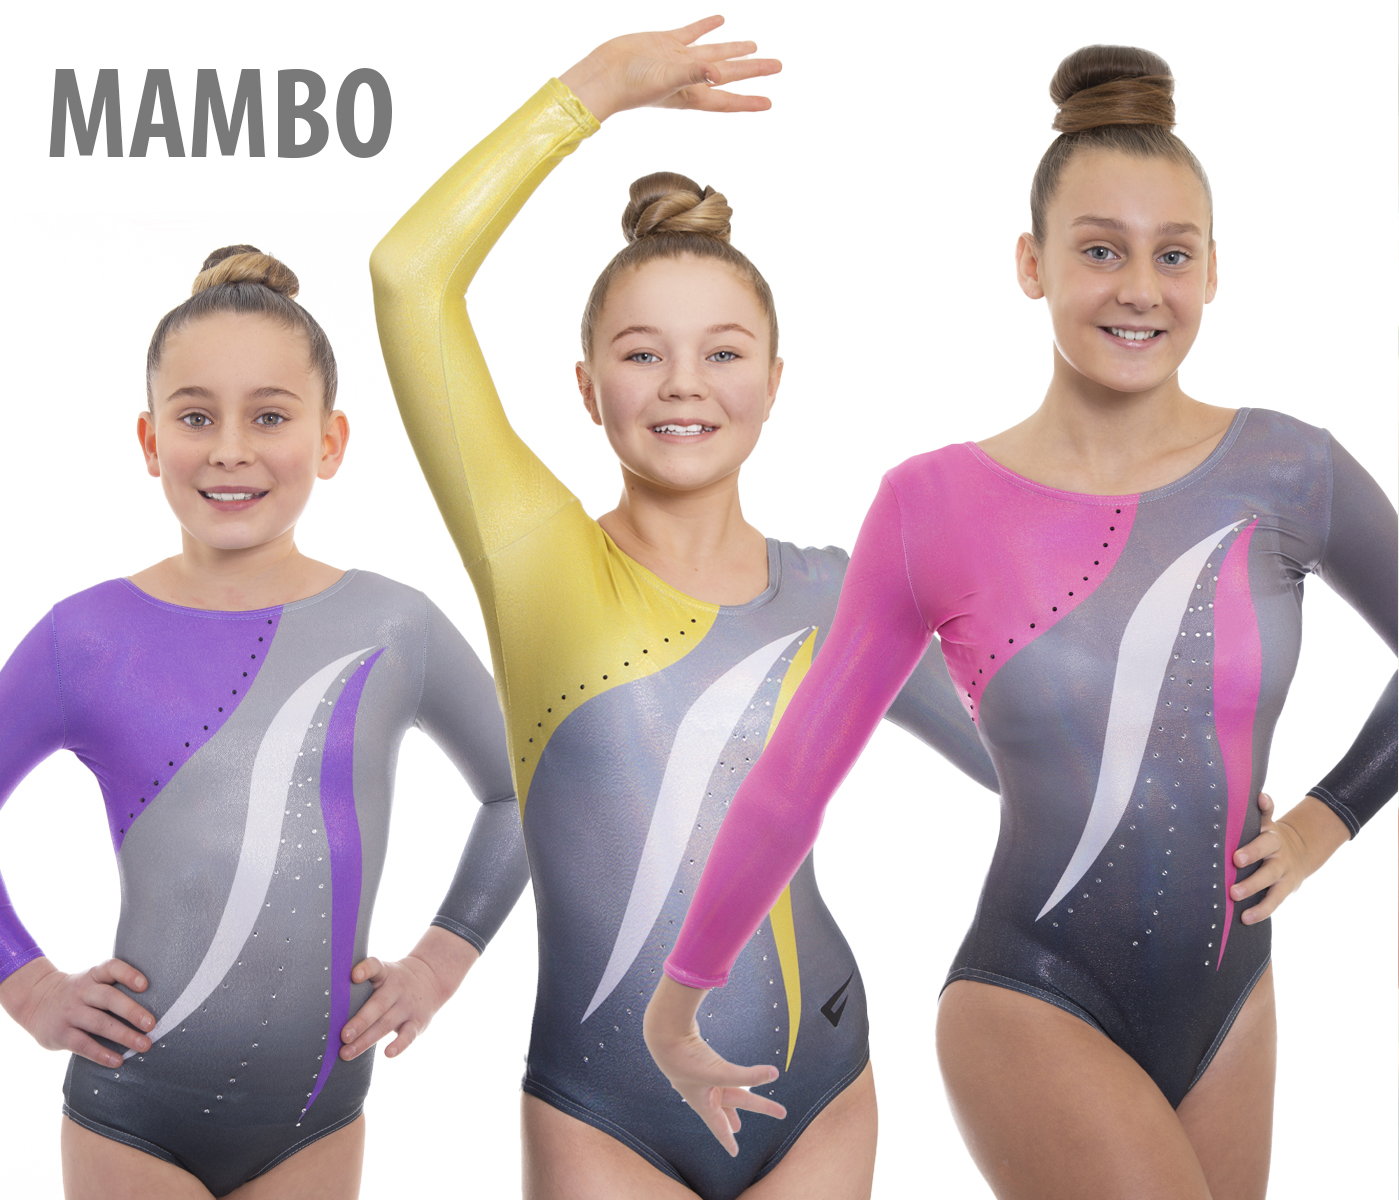 The Mambo Collection